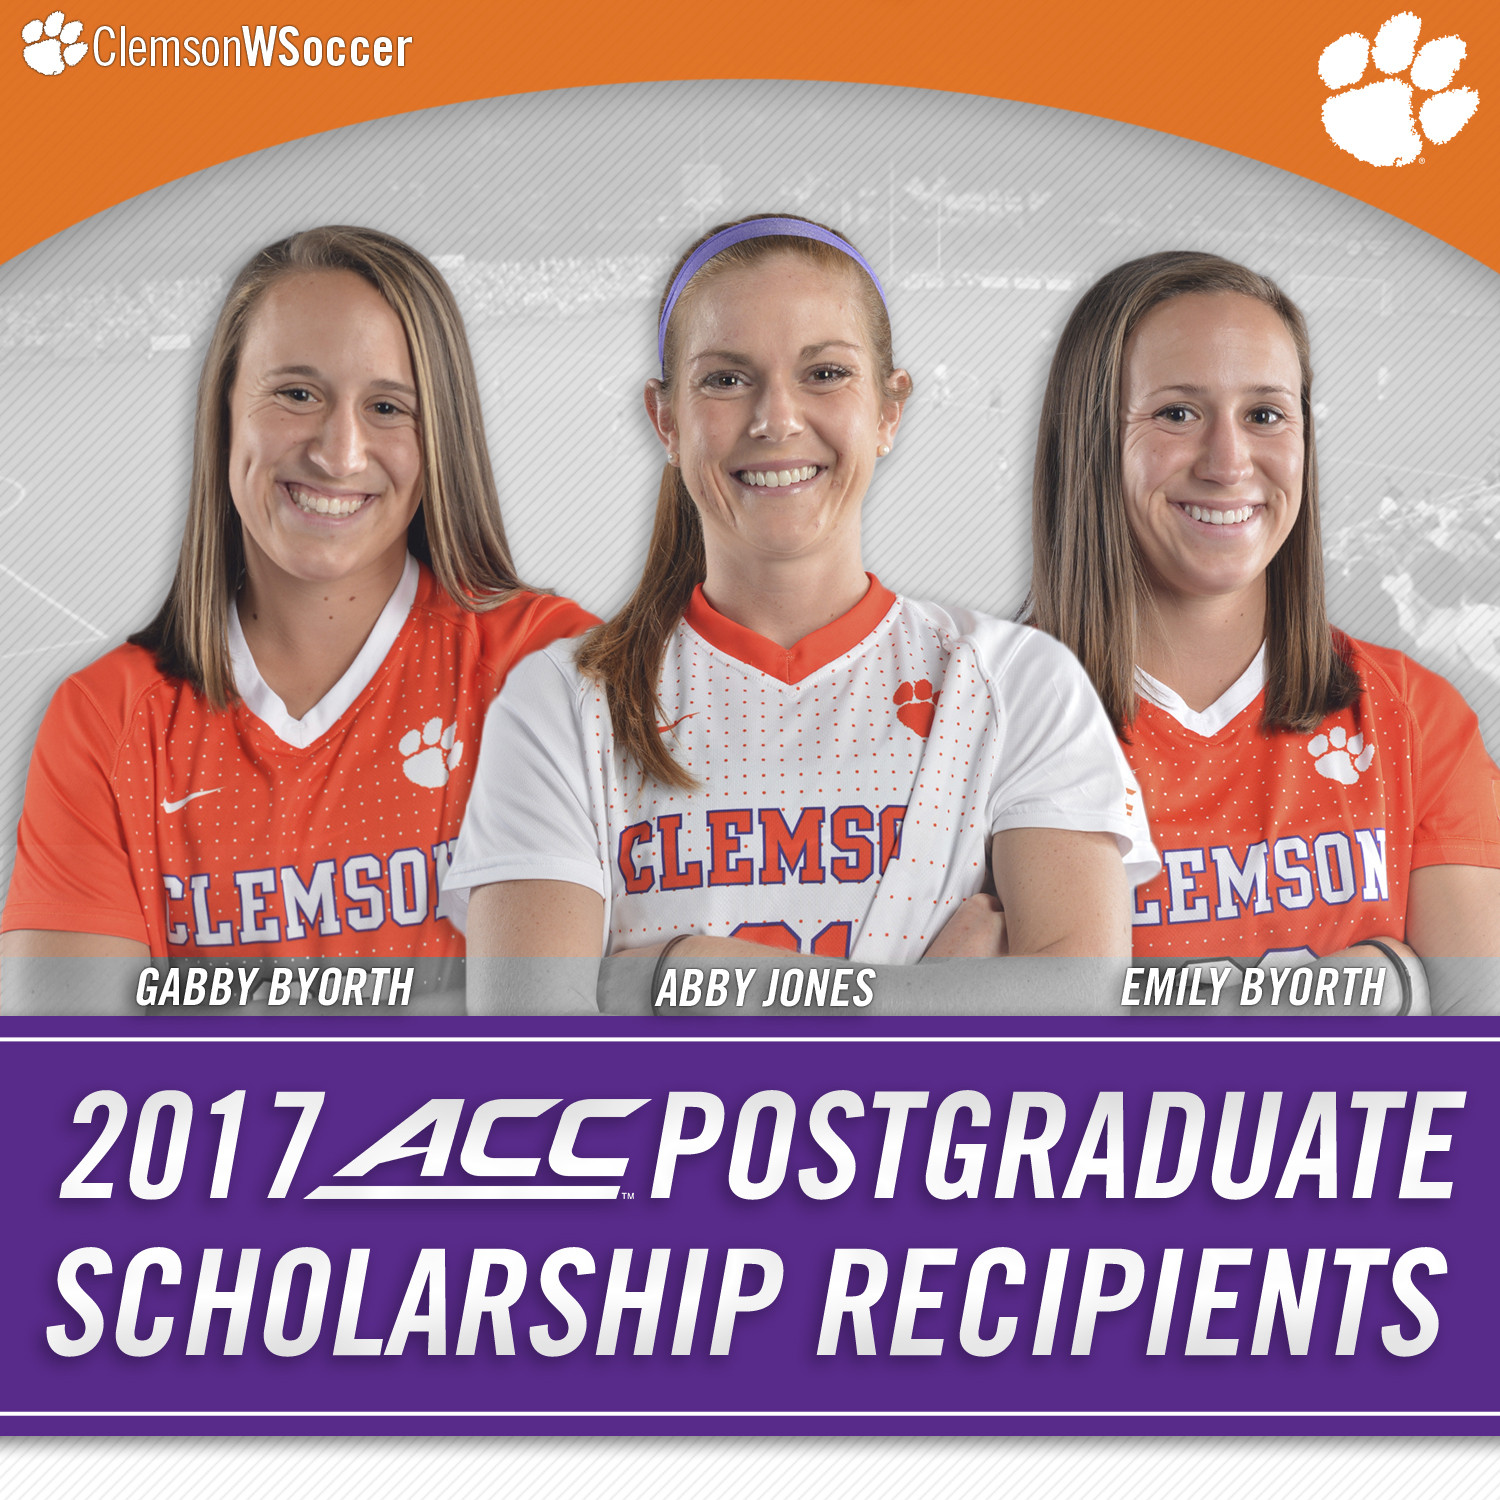 Three Tiger Women's Soccer Players Earn ACC Postgraduate Scholarships